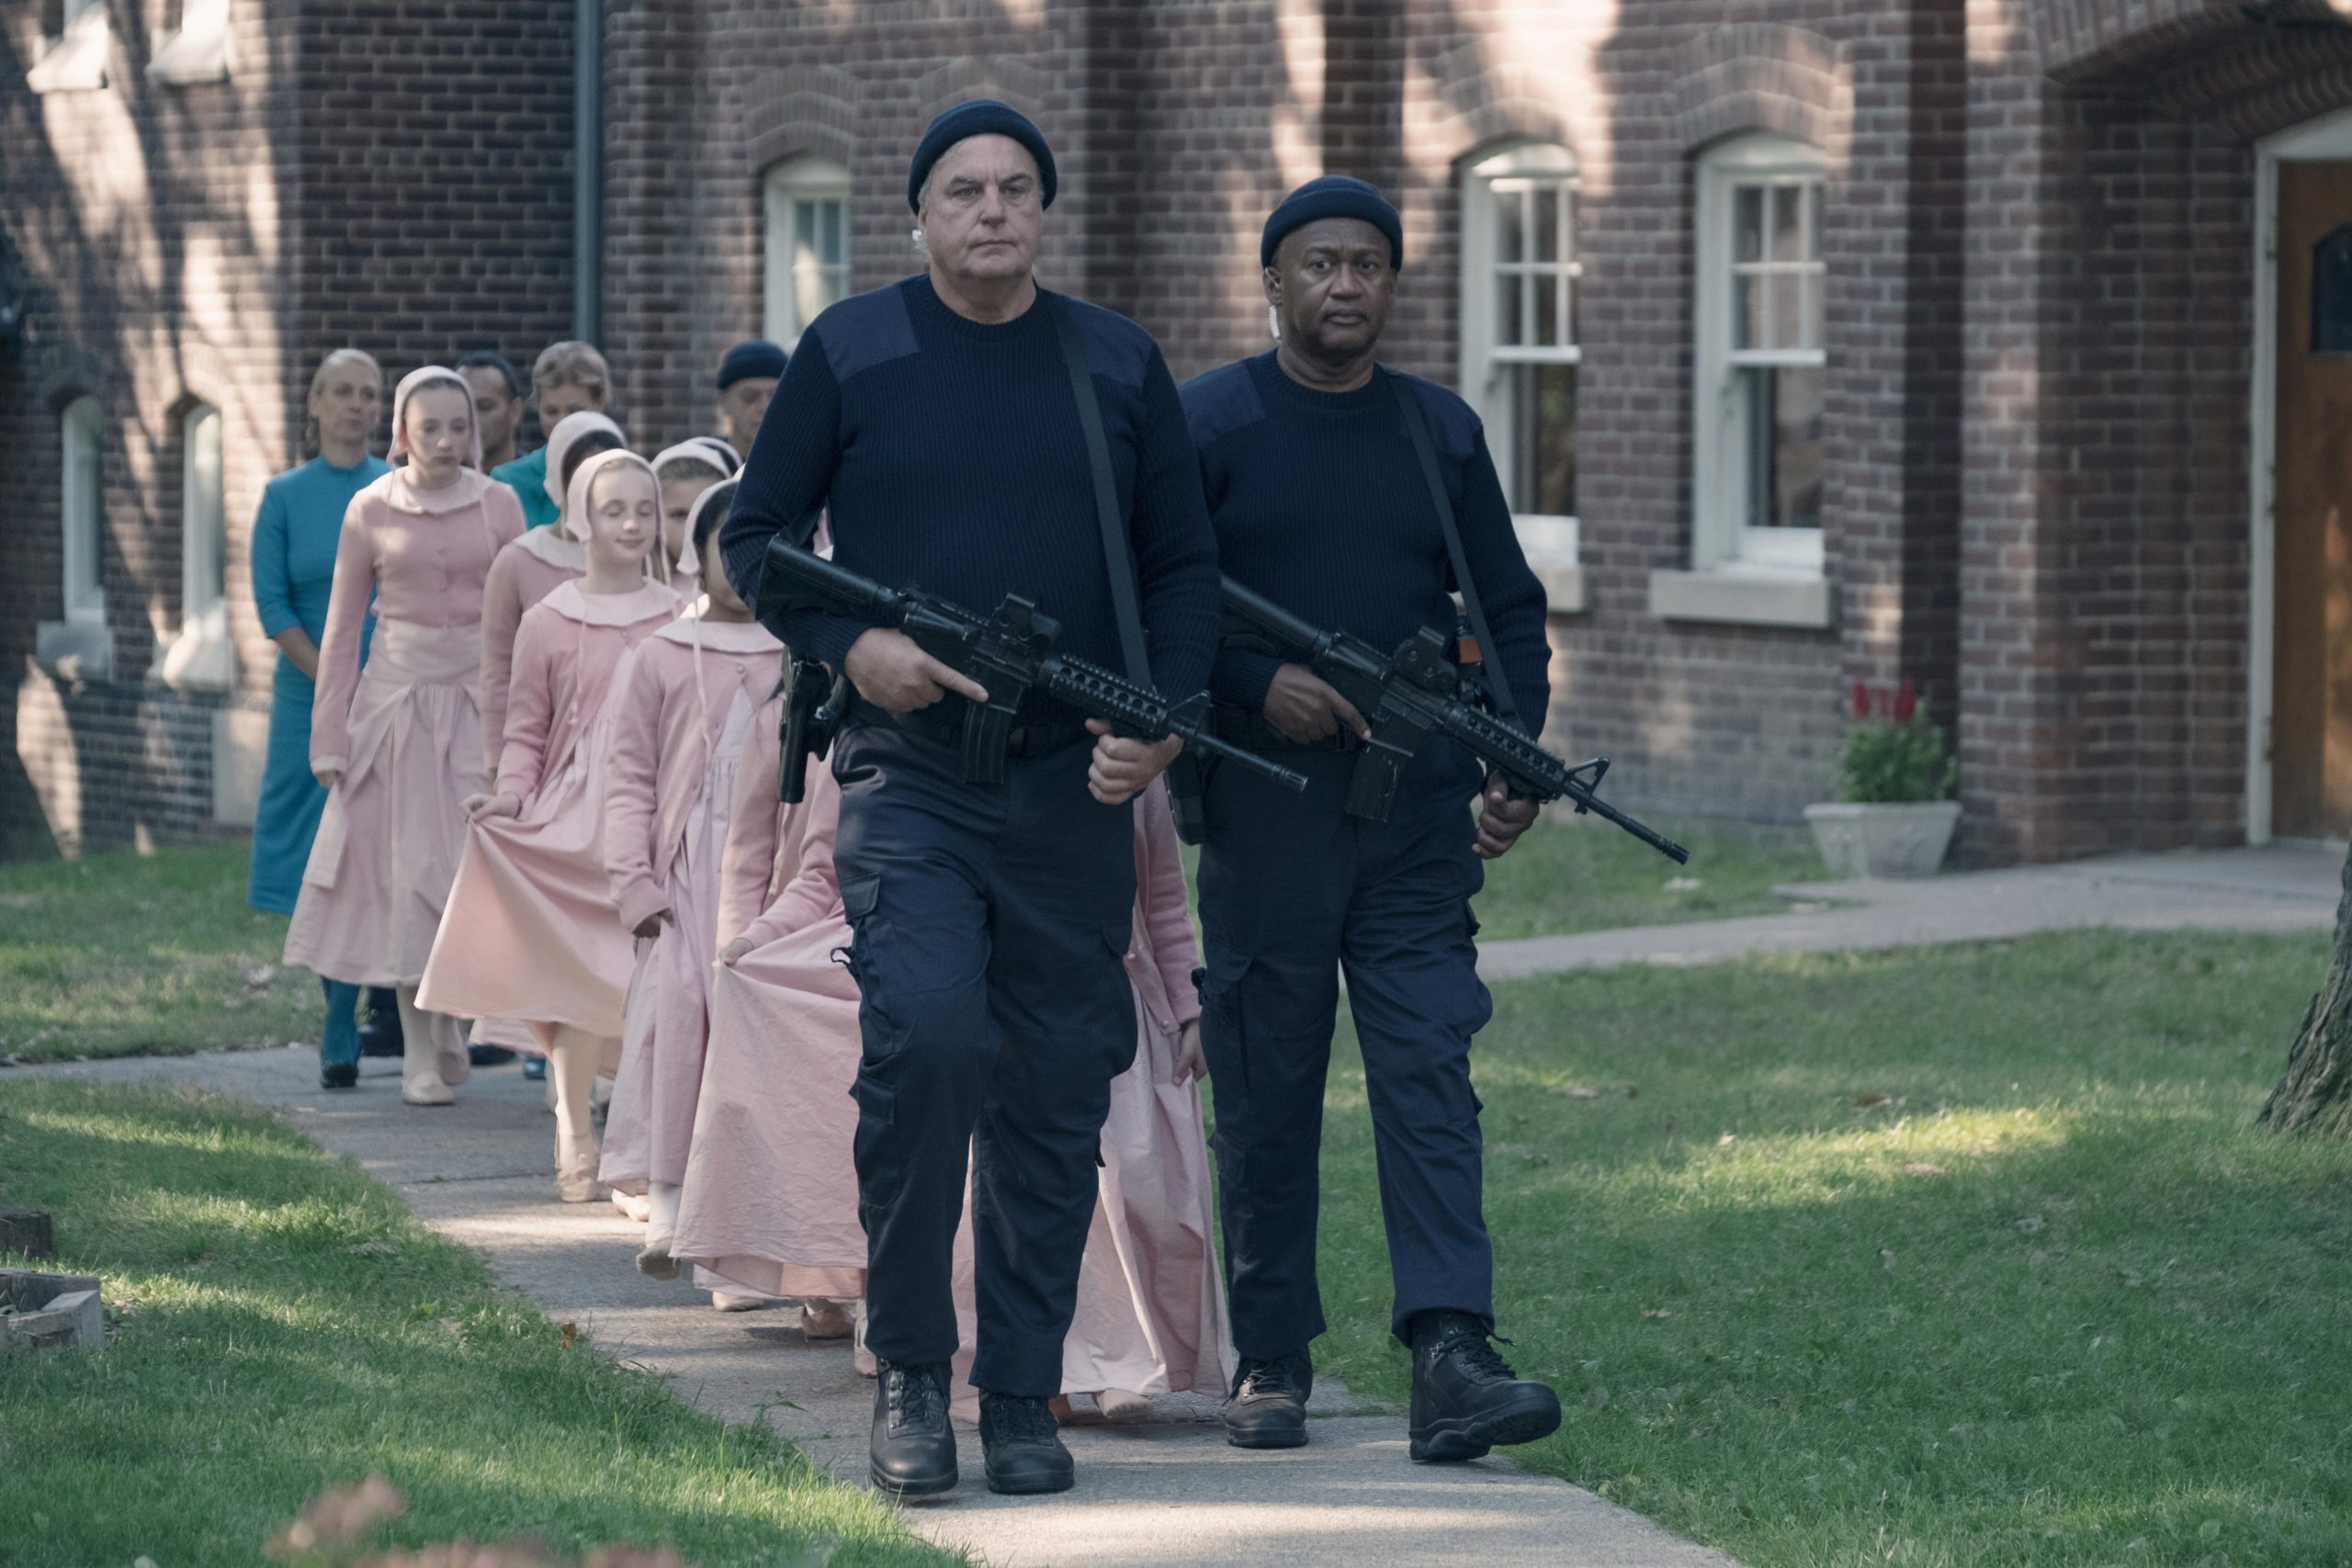 The Handmaid's Tale review: In this brutal dystopia, children are the holy grail.